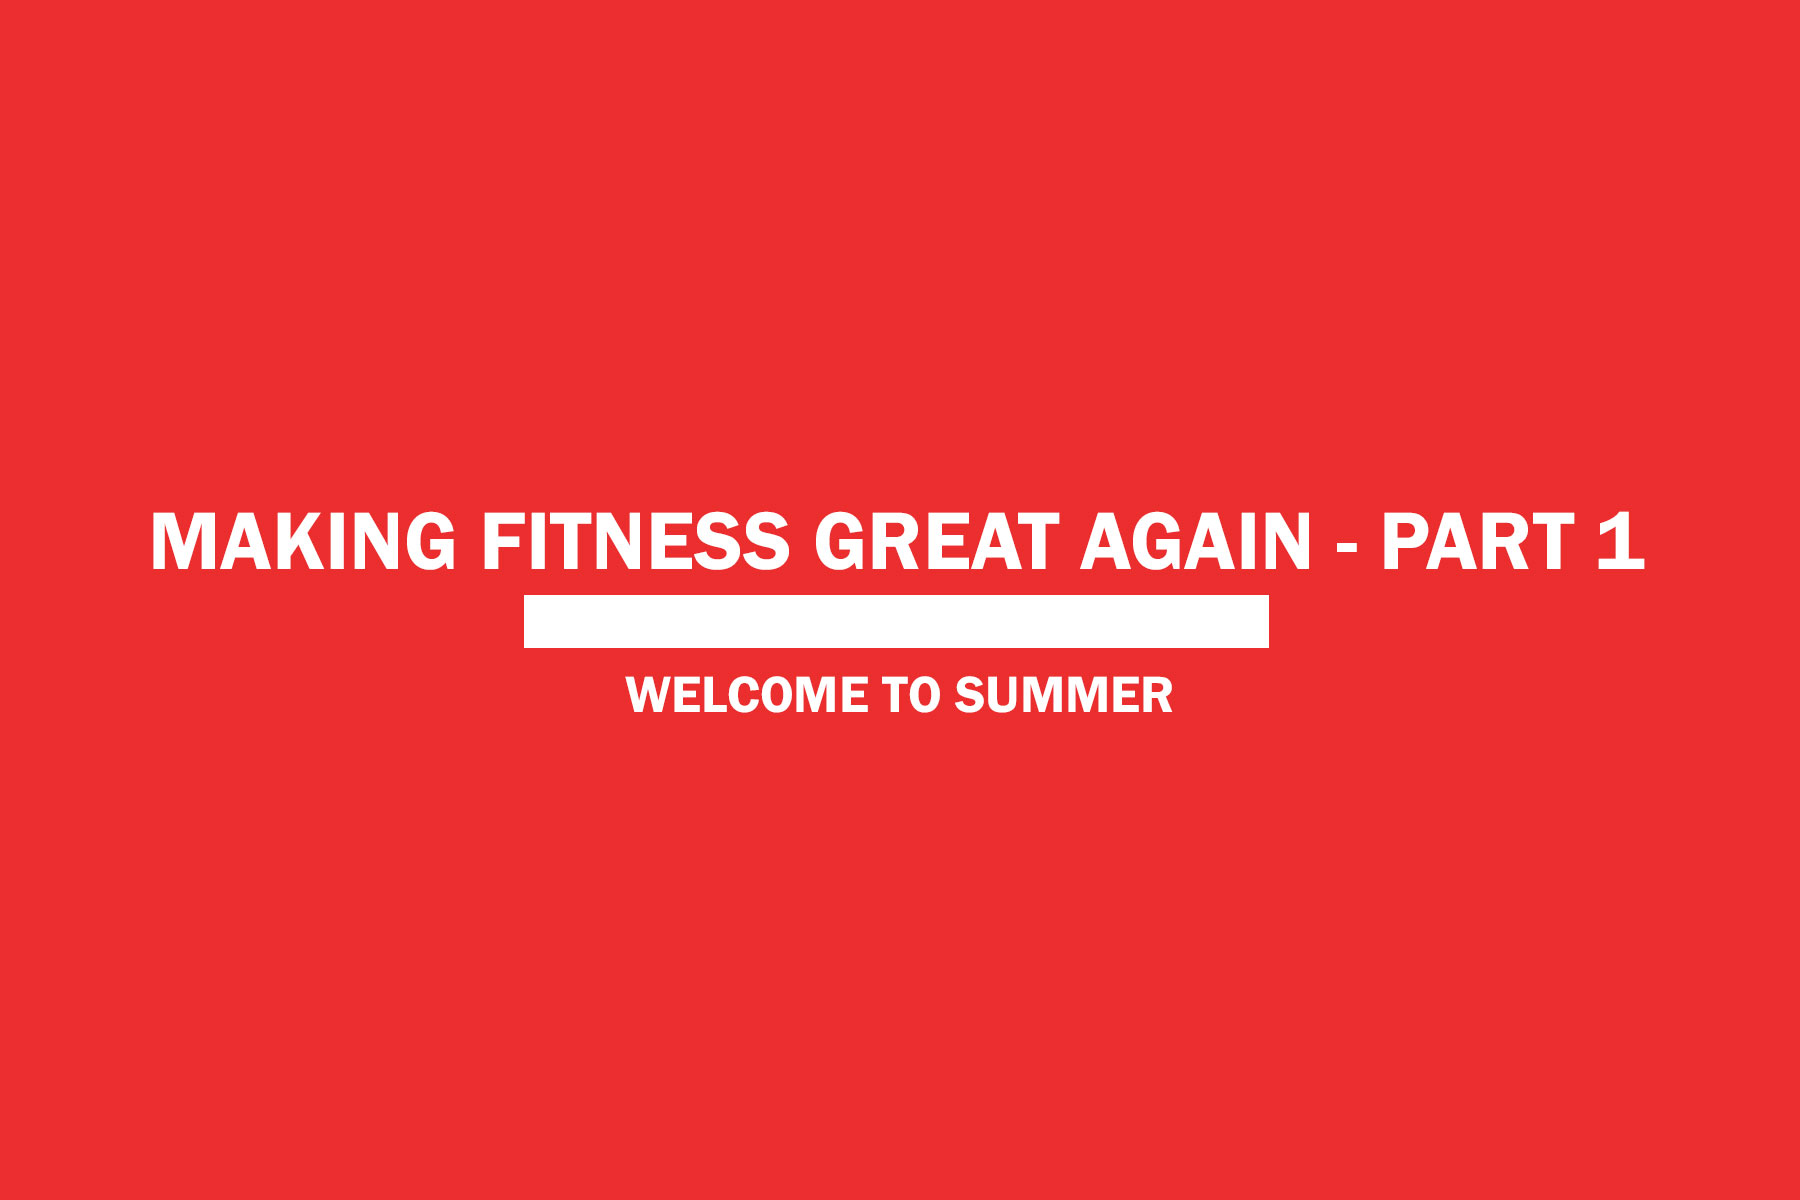 Making Fitness Great Again – Part 1